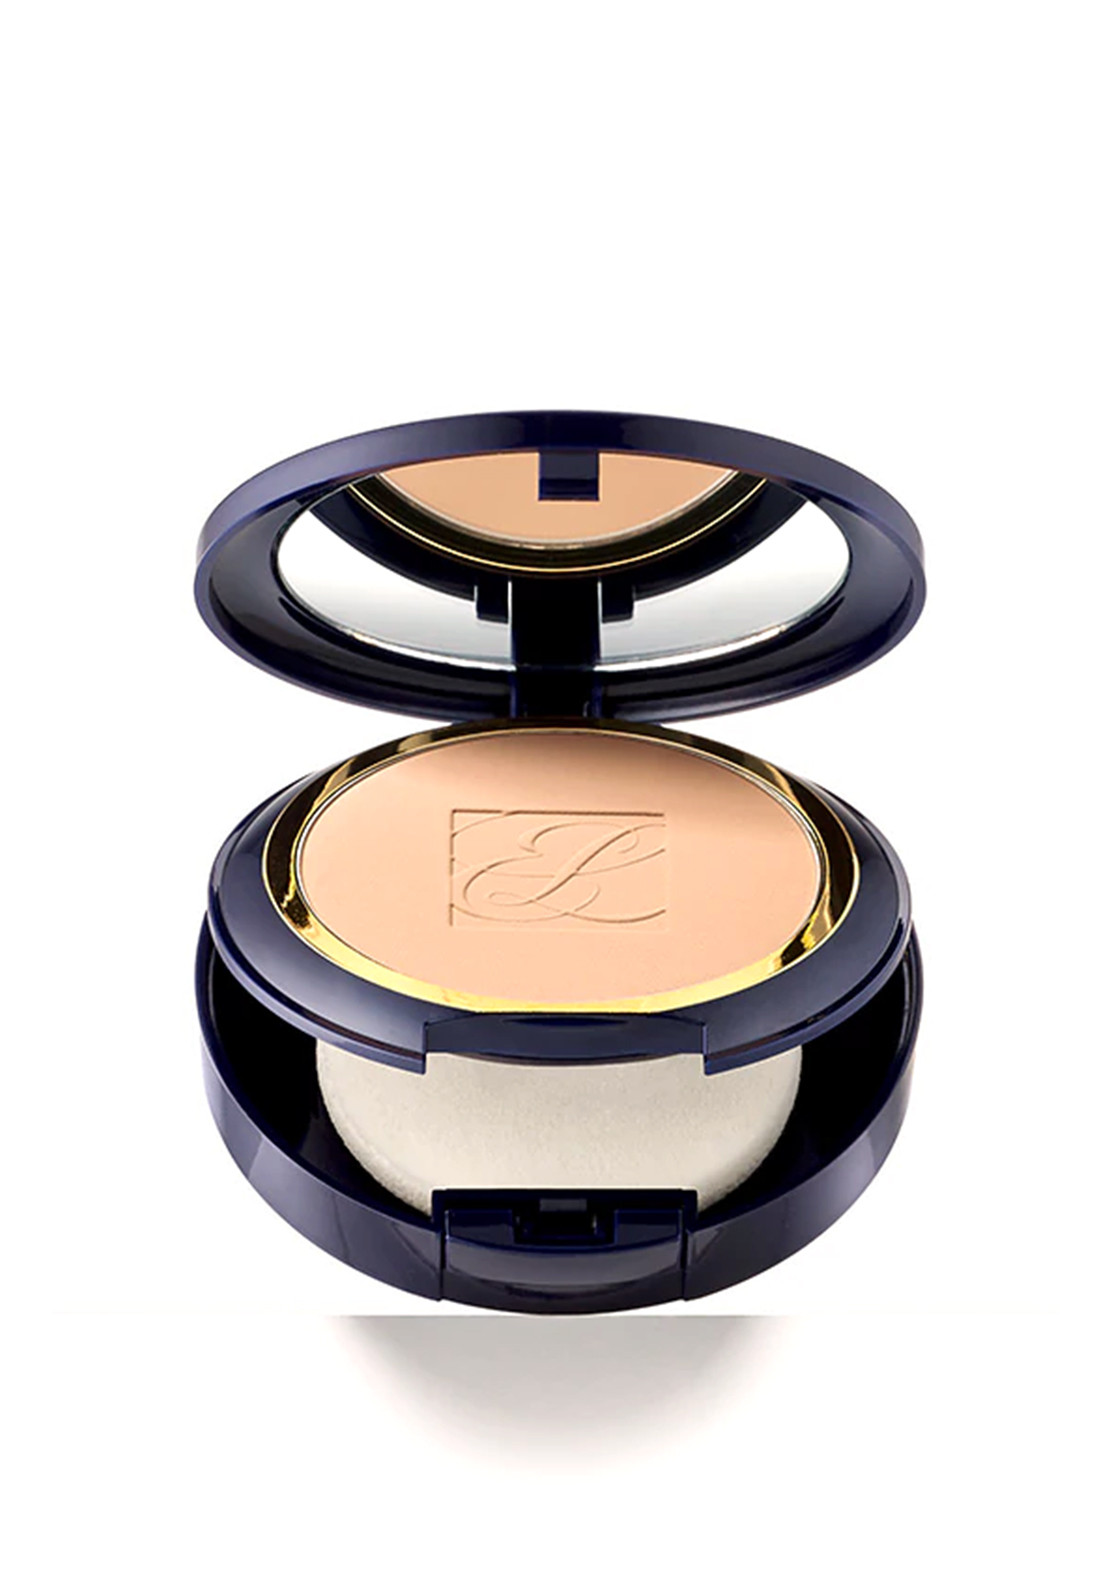 Estee Lauder Double Wear Stay In Place Powder Makeup, Ecru